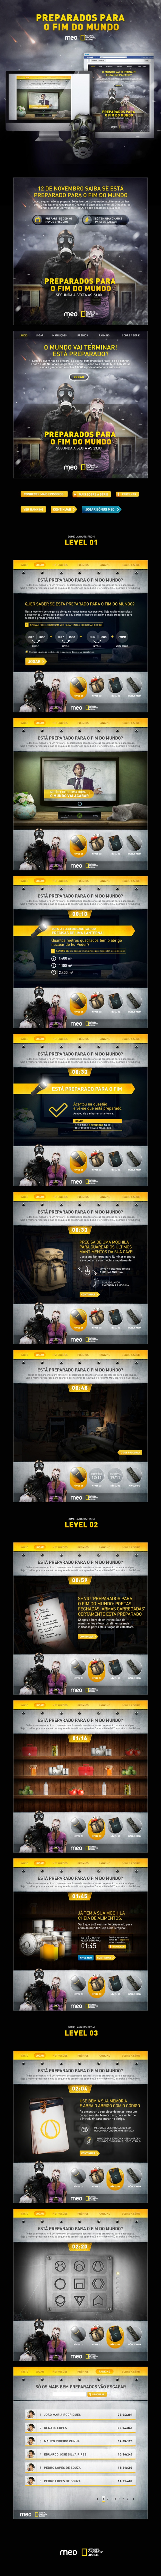 National Geographic Channel PT - Doomsday Preppers by Hugo Miguel Sousa, via Behance *** Facebook APP made for National Geographic Channel Portugal